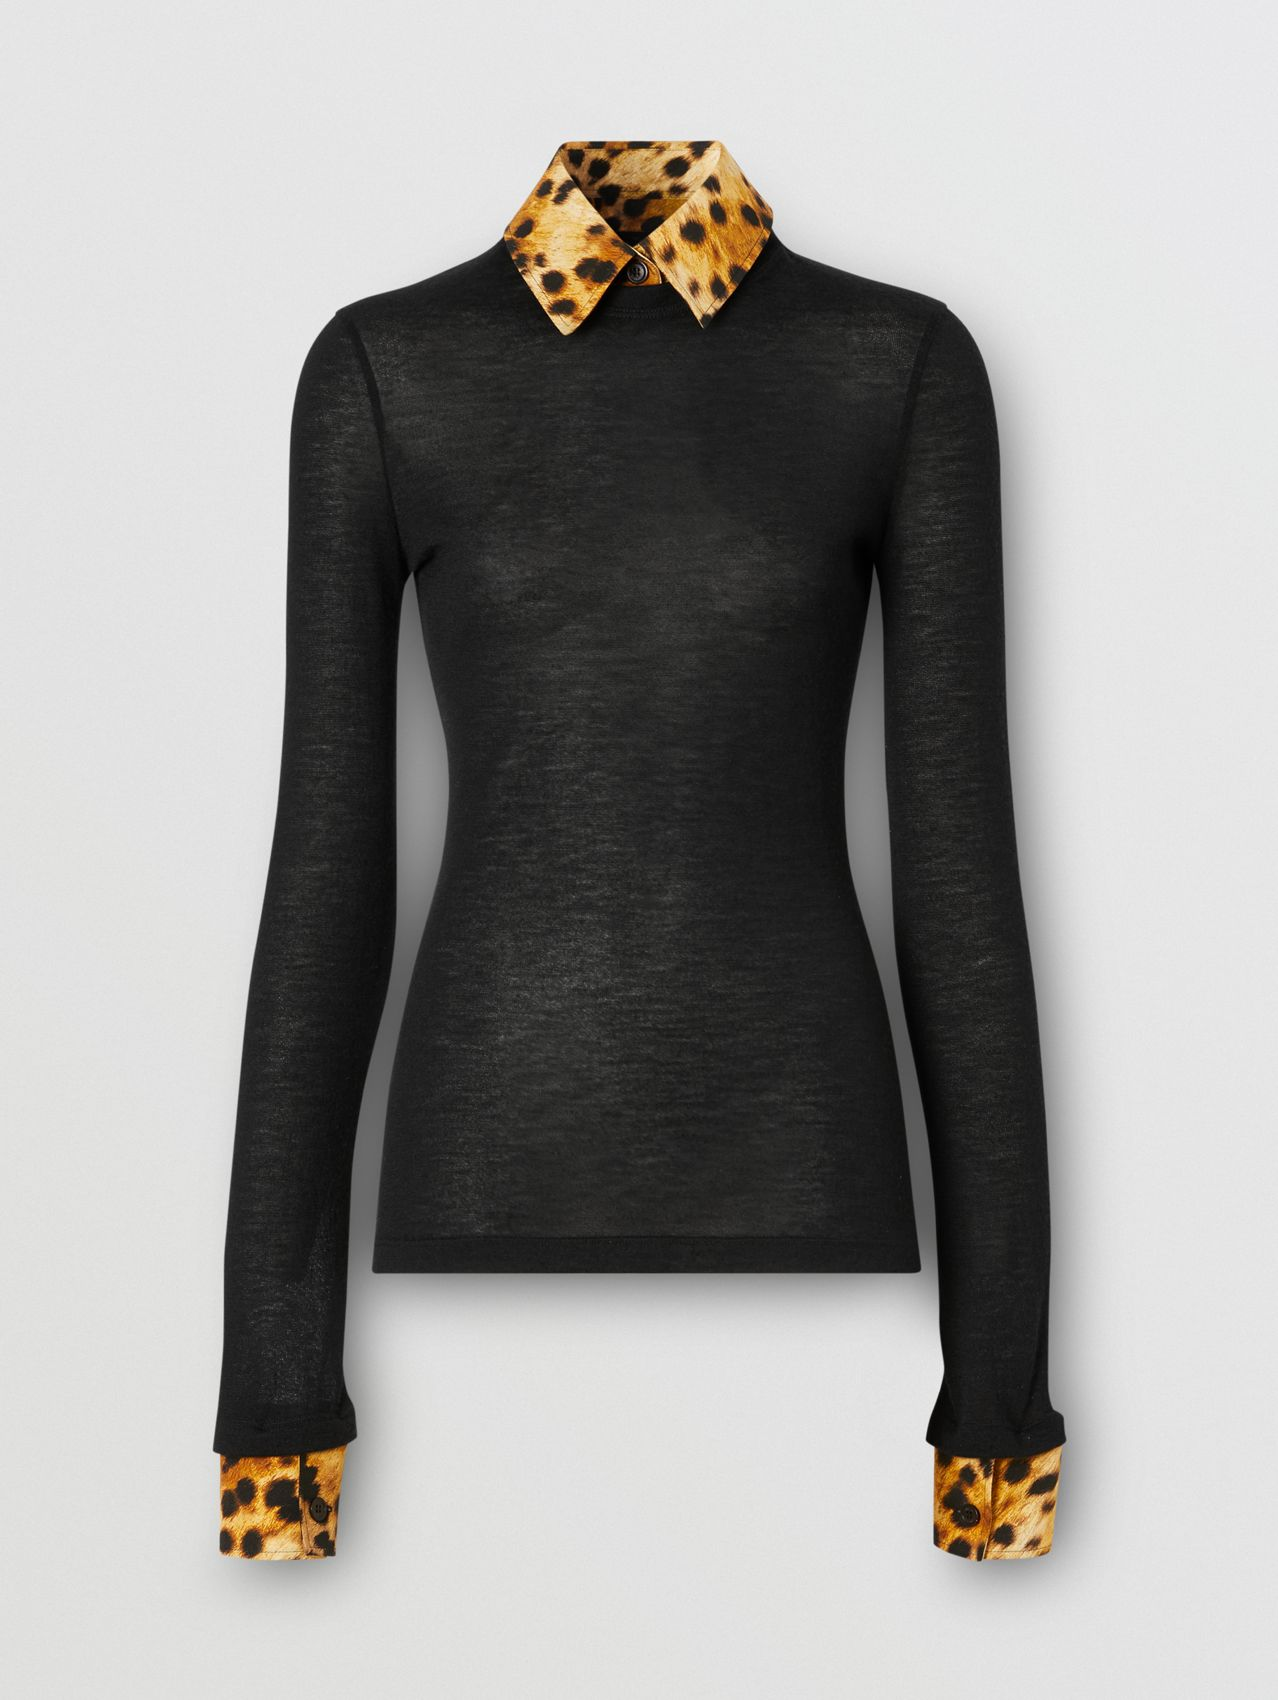 Long-sleeve Spotted Monkey Print Trim Cashmere Top in Black